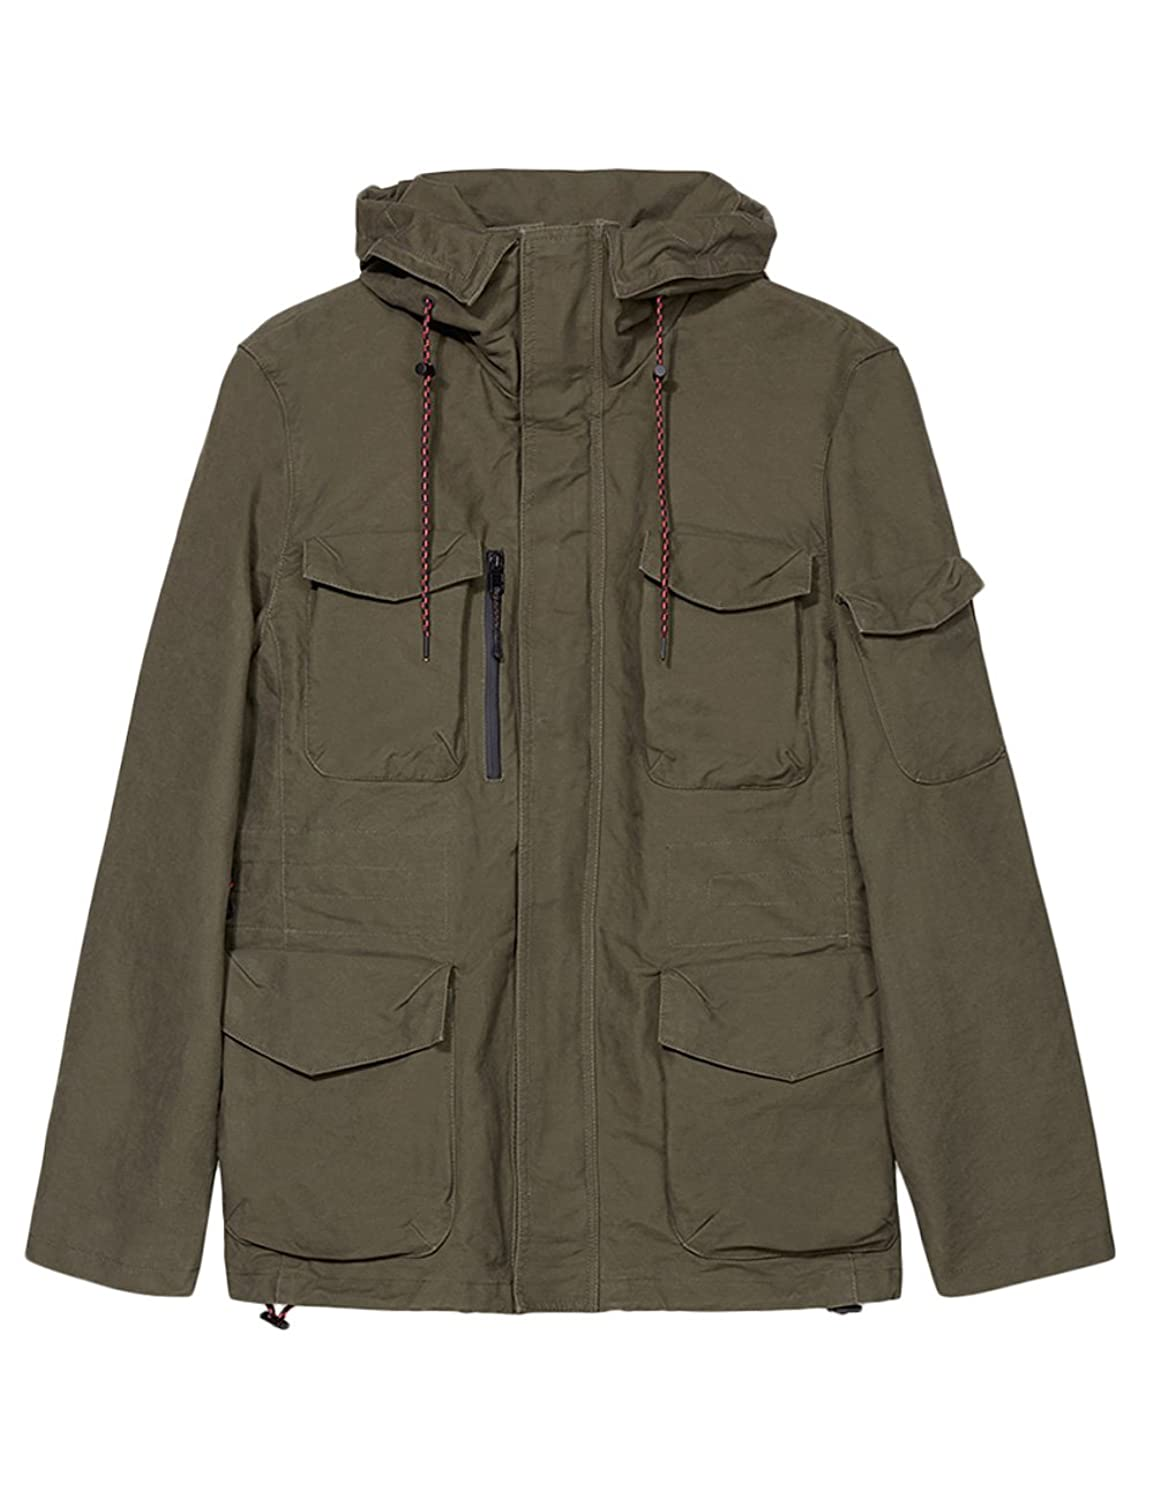 Esprit Men's 2-In-1 Field Jacket With A Zip-Off Quilted Gilet 100% Cotton